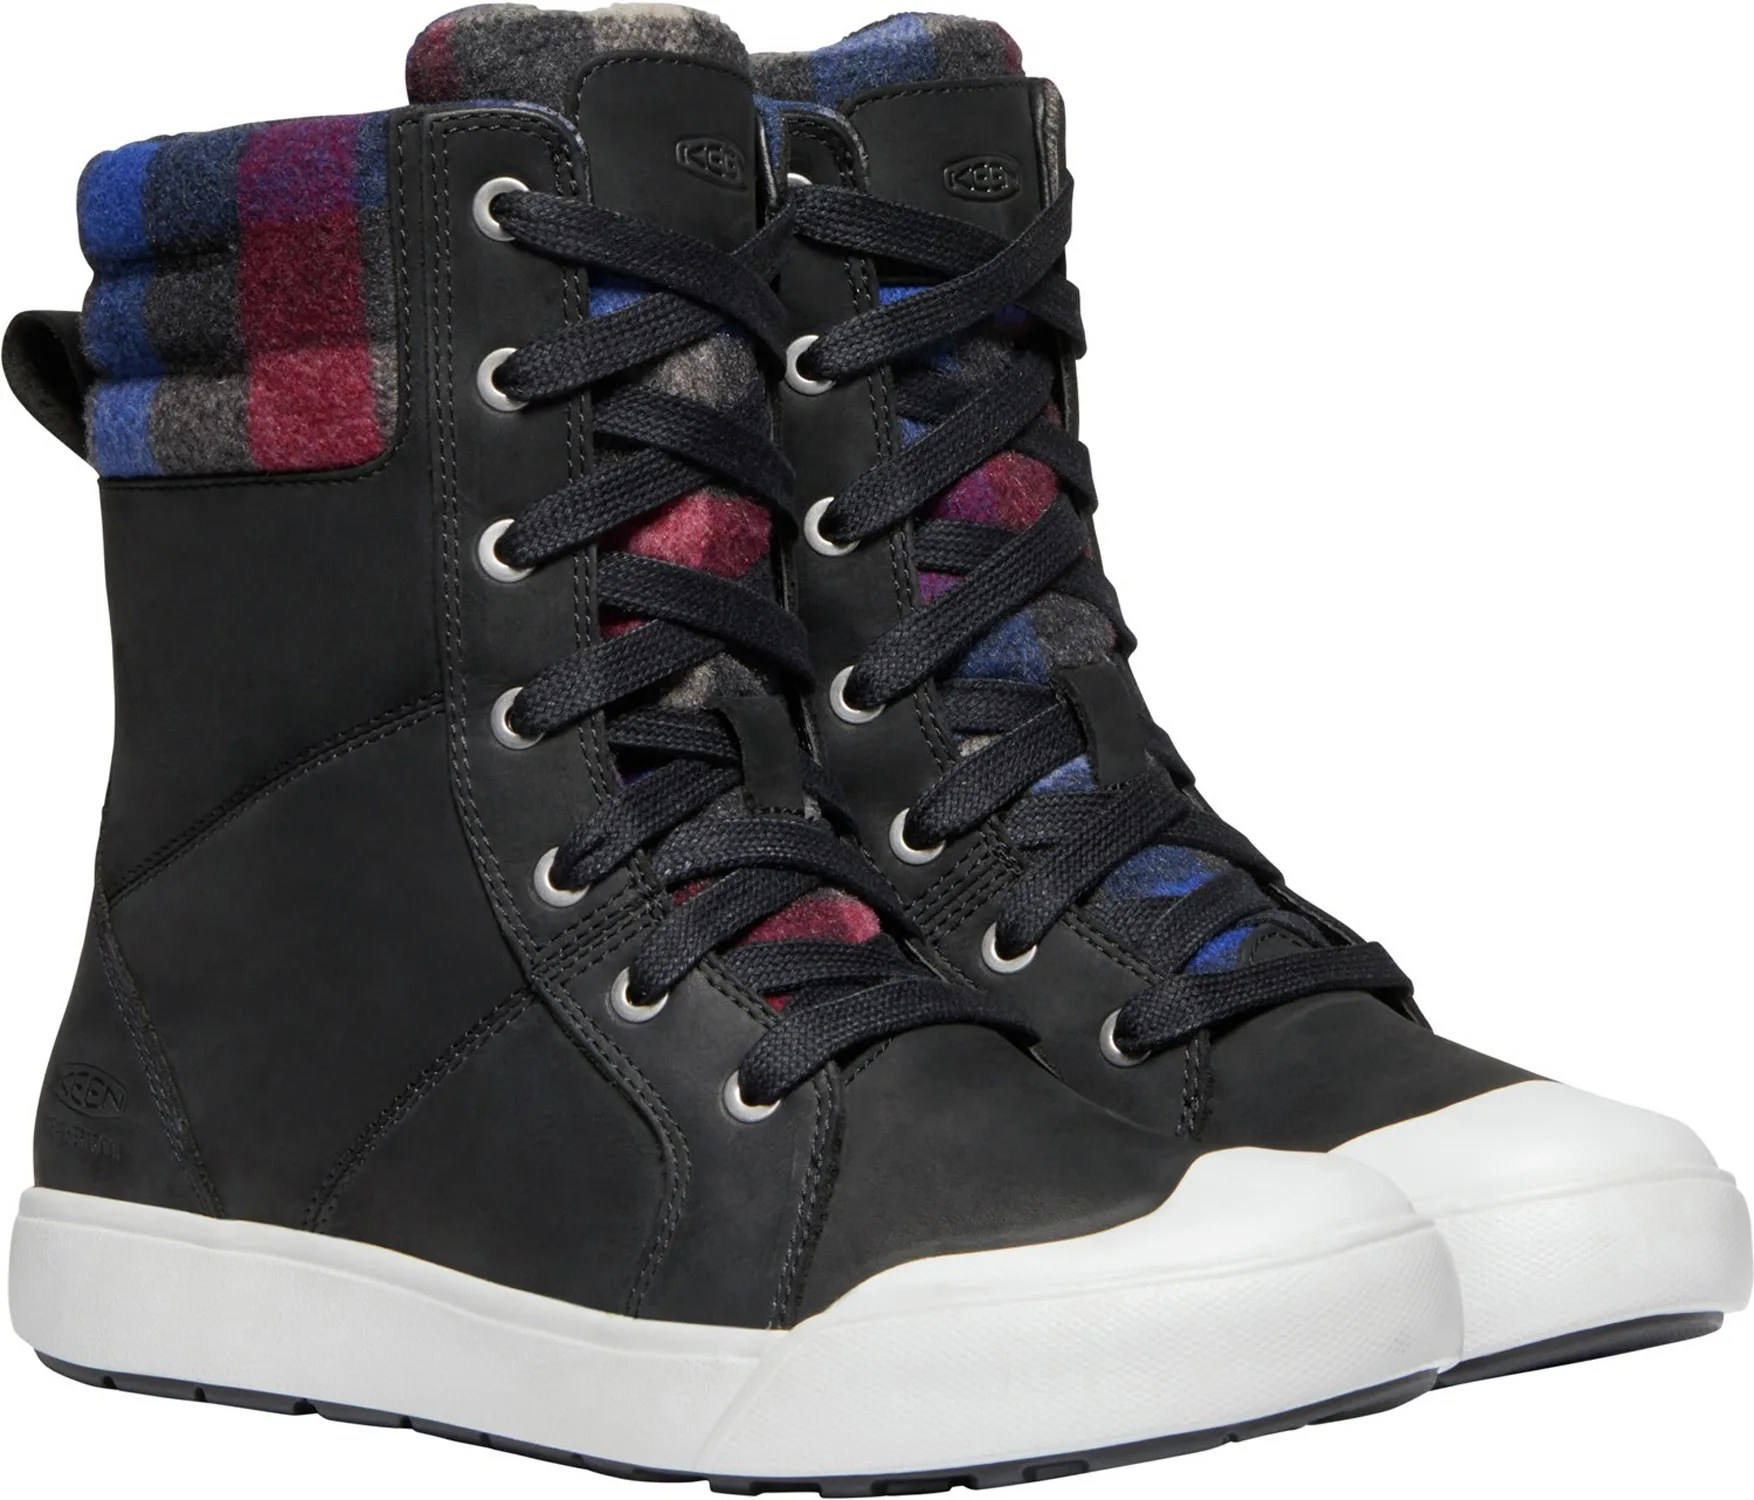 Keen Snow Boots Sale